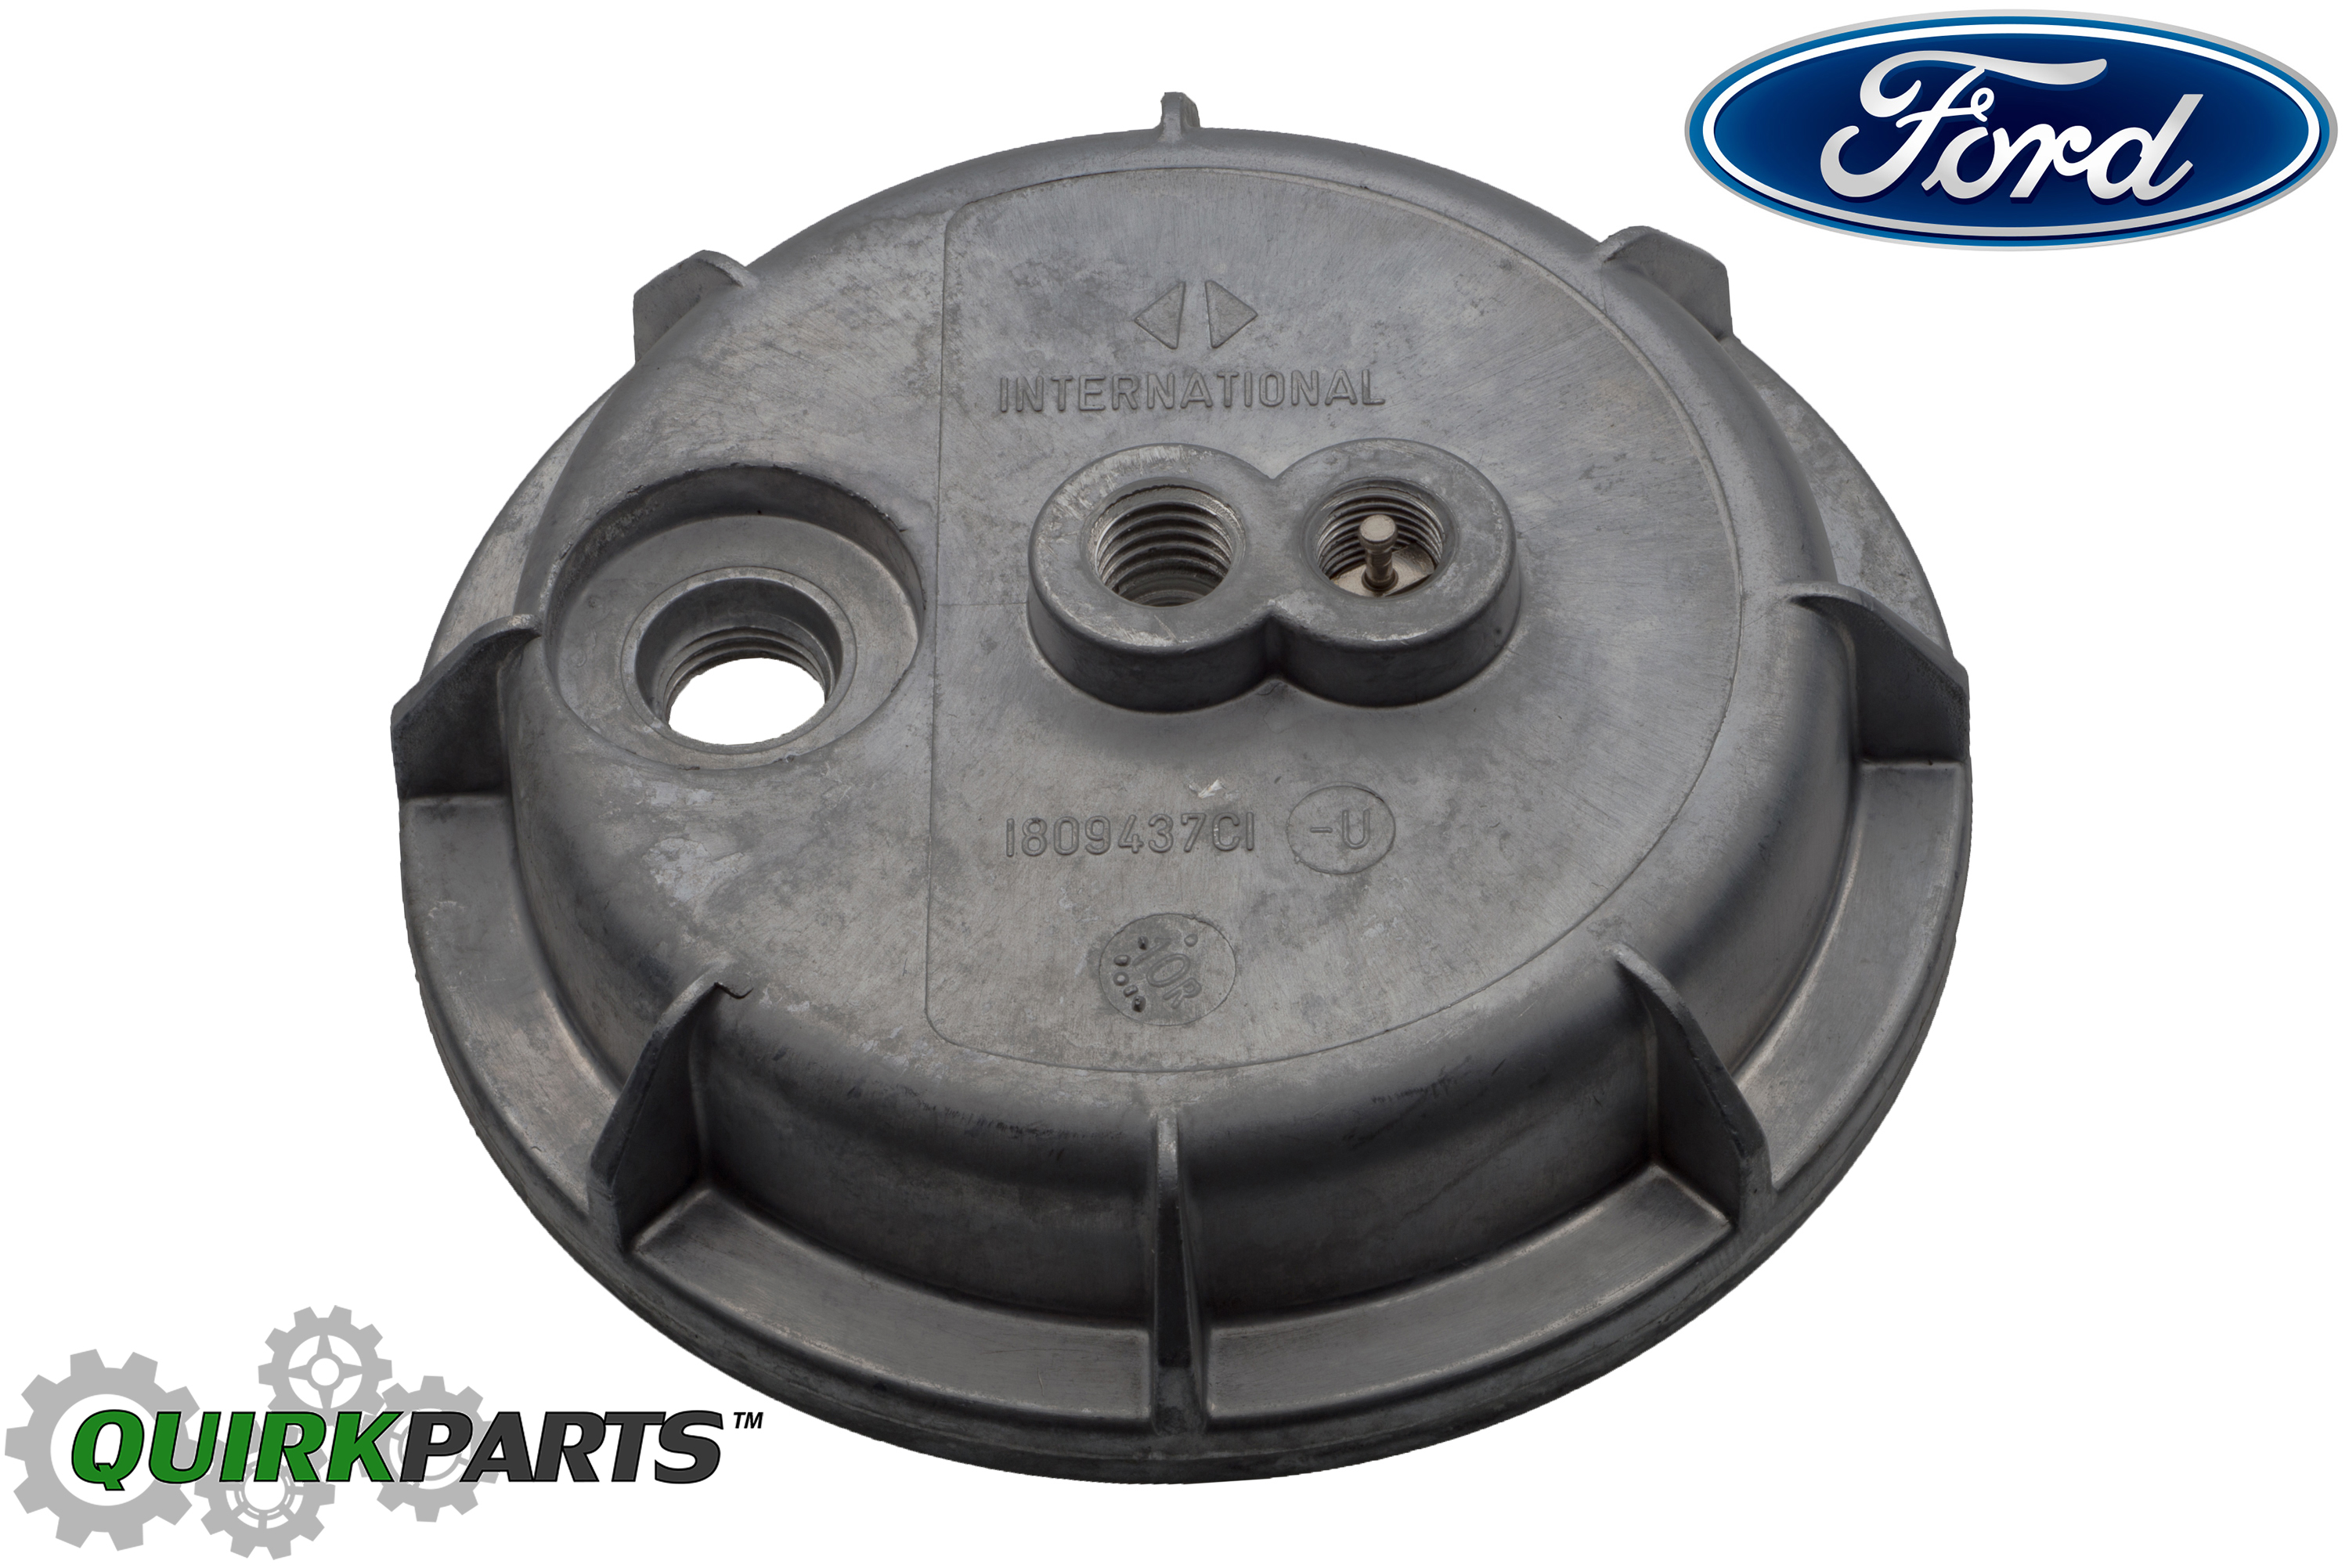 ford 7 3l diesel idi fuel filter housing bottom lower cap cover oem  e8tz9a343a - ford (e8tz-9a343-a)